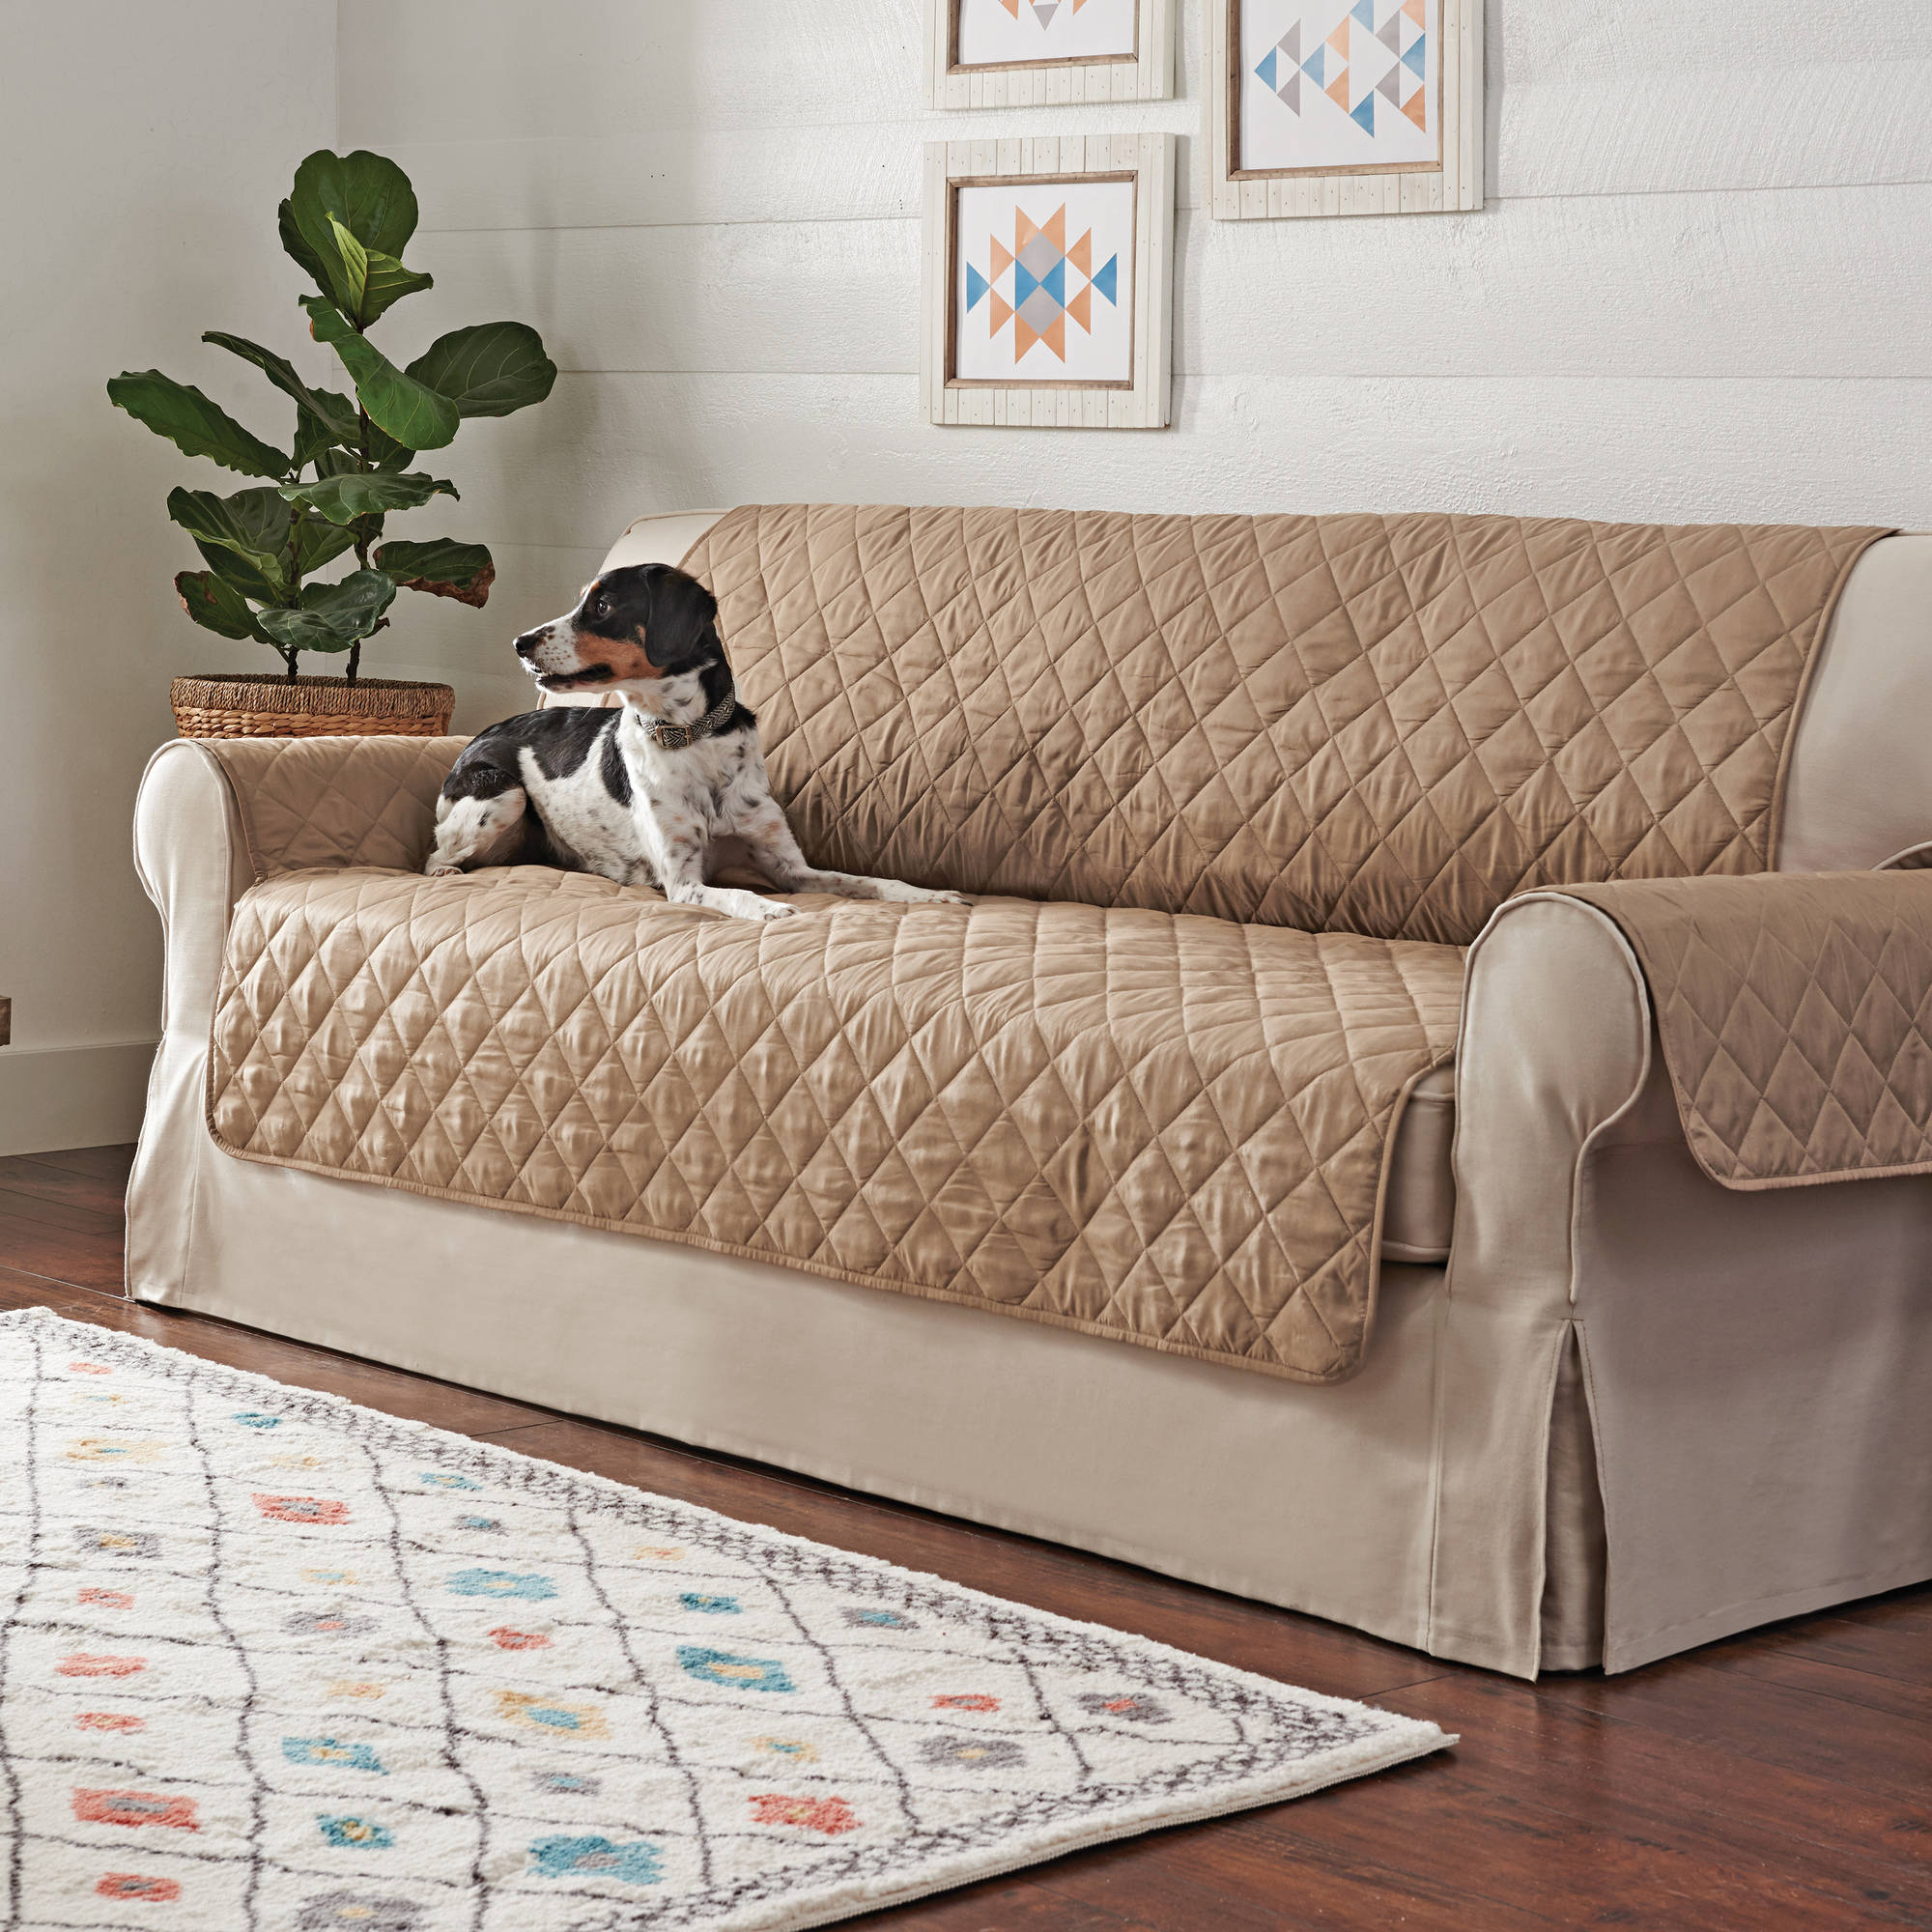 Better Homes and Garden Non-Skid Waterproof Quilted Pet Sofa Cover -  Walmart.com 523dbe6f3